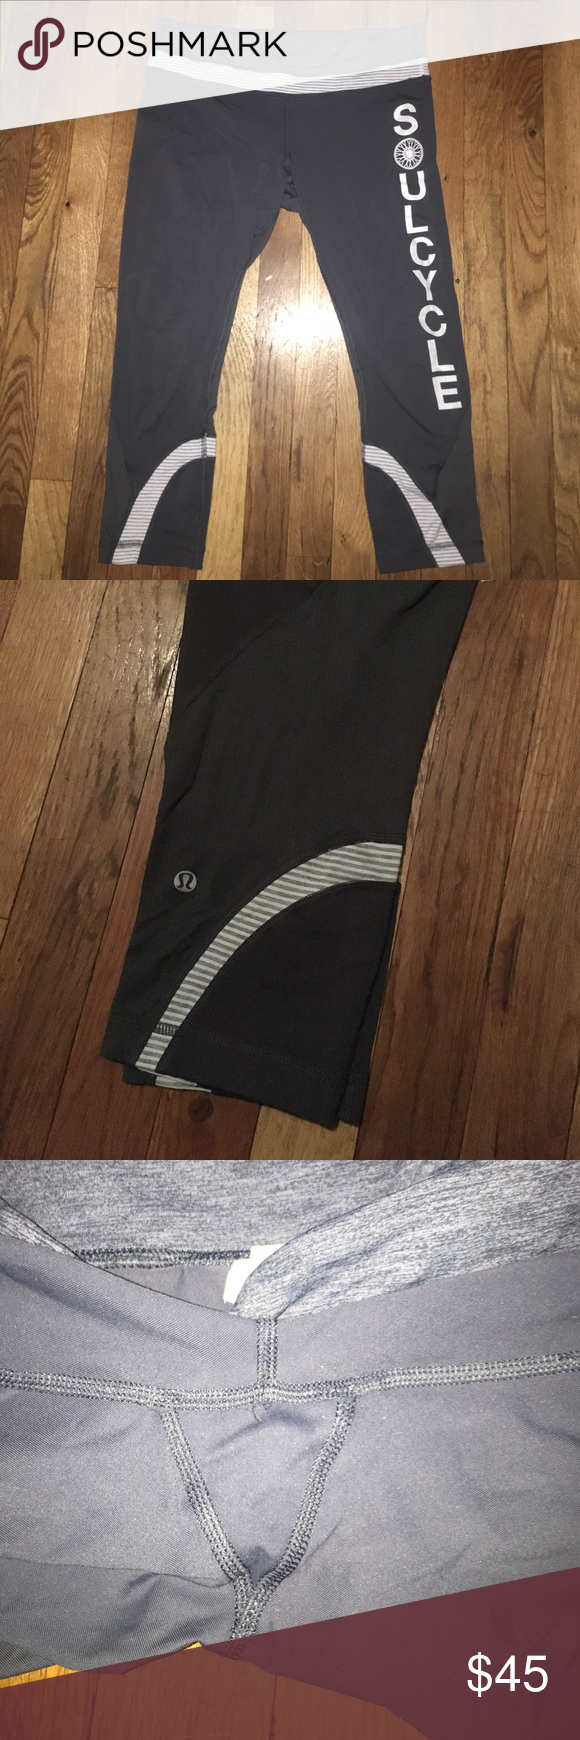 Soulcycle Lululemon Run Inspire Crop 2 Lululemon Run Inspire Crop 2 for Soulcycle. Grey with white stripe detailing. Perfect condition, very light pilling (see 3rd photo). No signs of wear except for cracking of letters on left leg. Hand washed, laid flat to dry. Never dried. No stains or rips. Pet free and smoke free home. lululemon athletica Pants